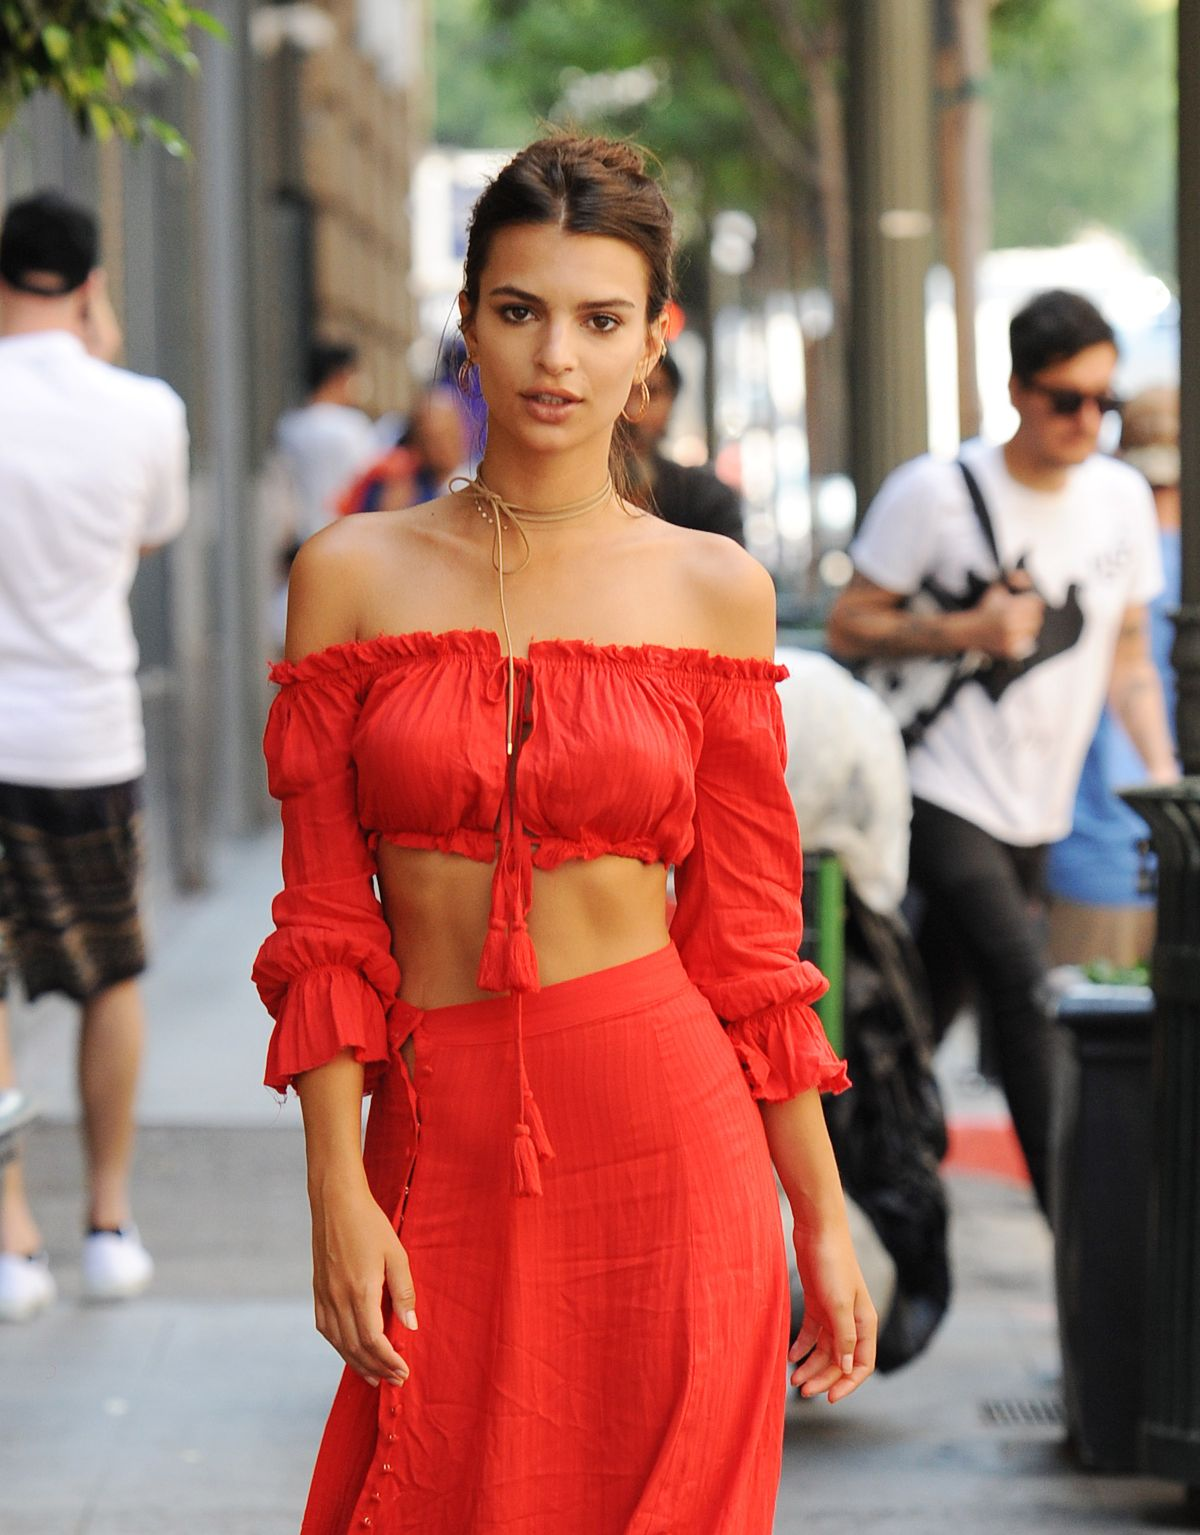 EMILY RATAJKOWSKI Out and About in Los Angeles 07/30/2016